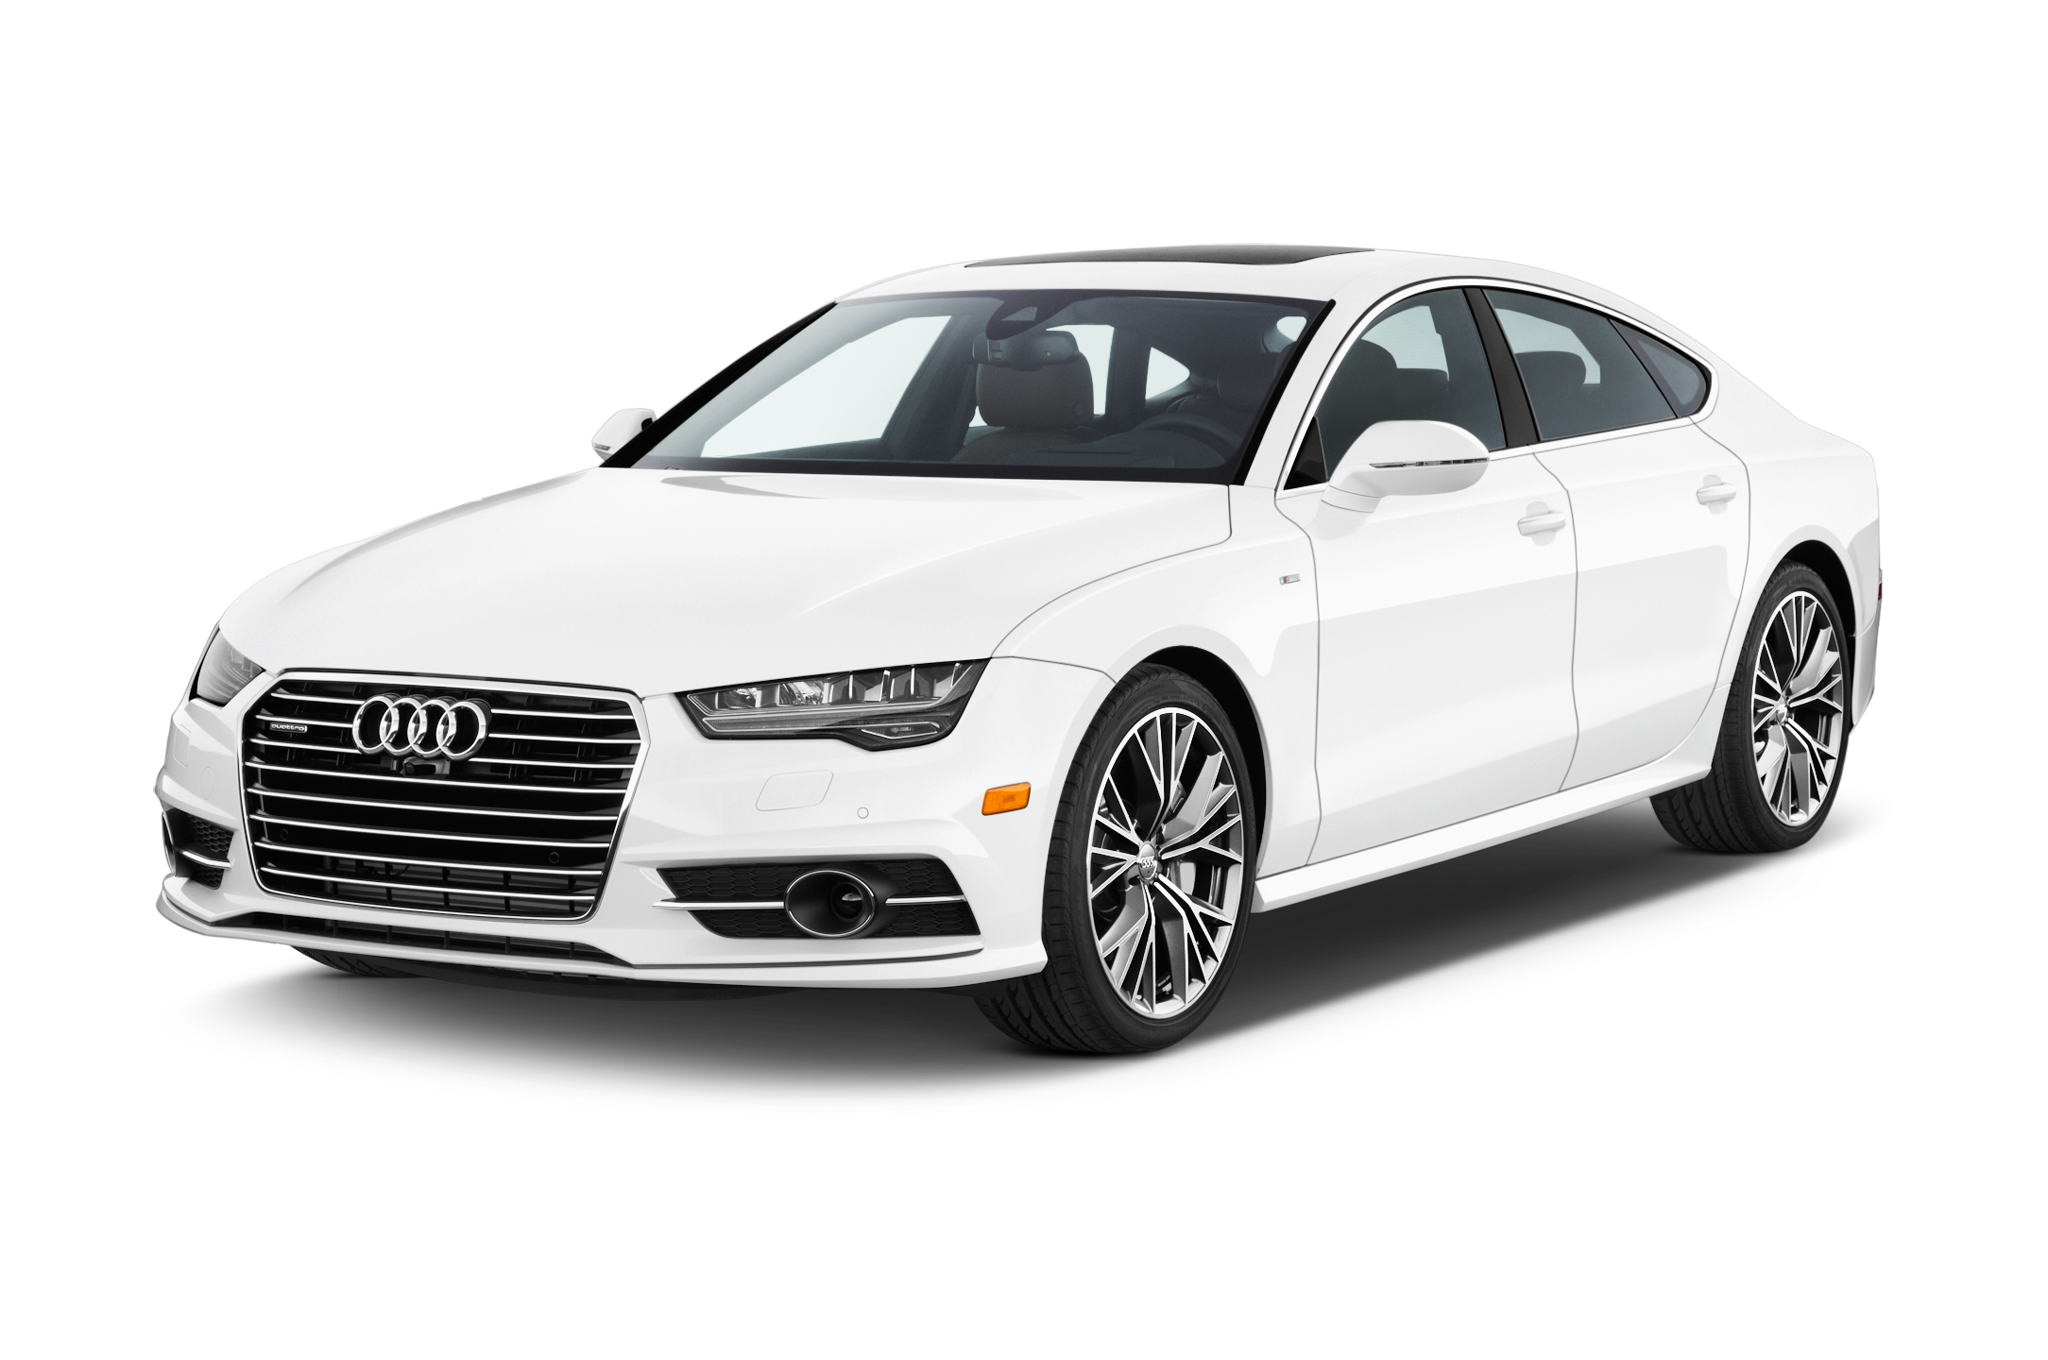 Audi A7 3 0 T >> 2017 Audi A7 3.0T Competition Quattro First Drive Review | Automobile Magazine